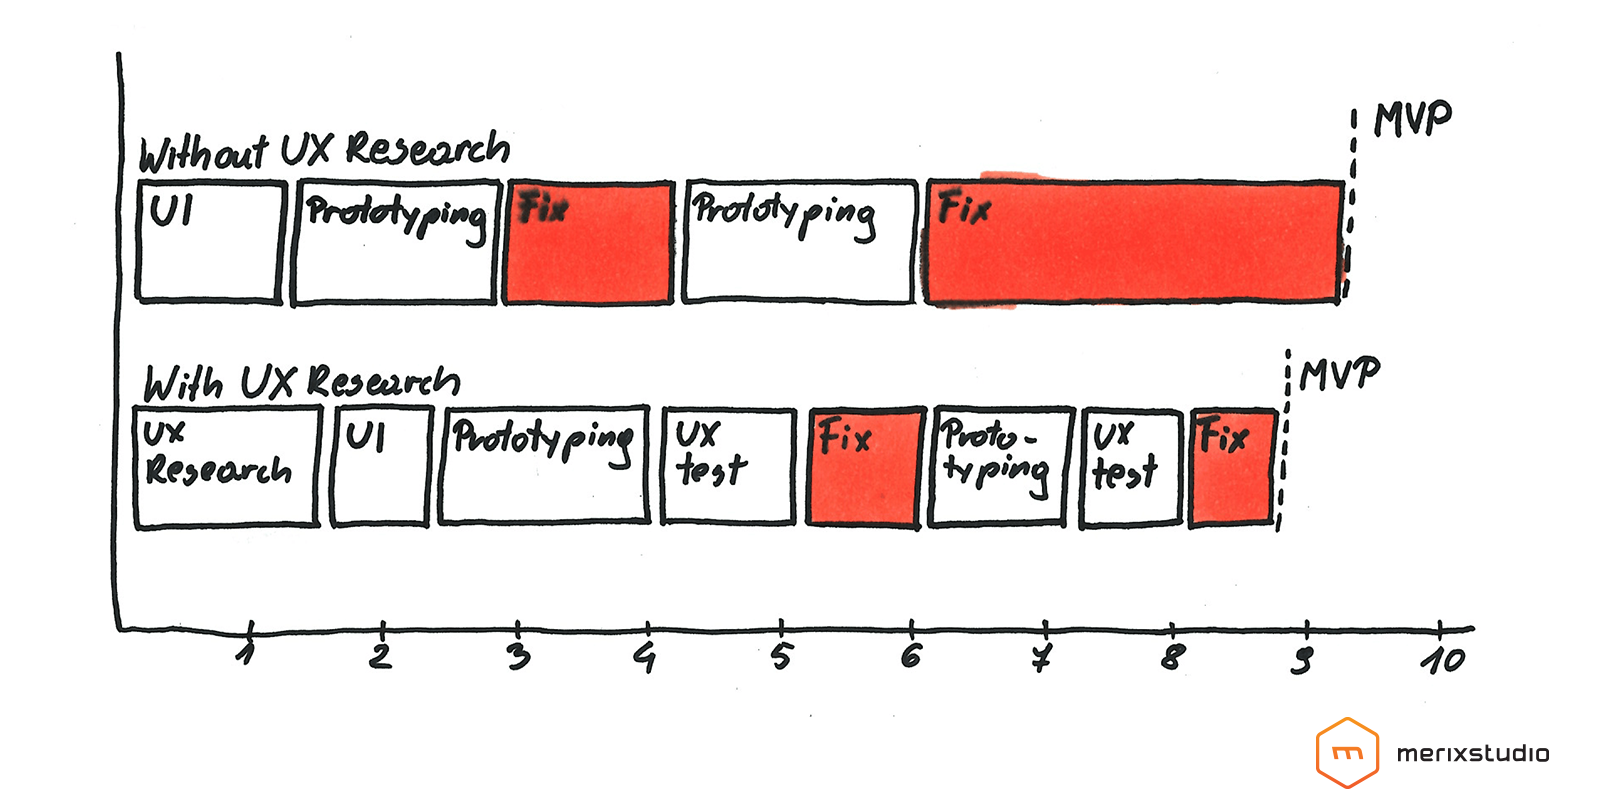 UX Research Value